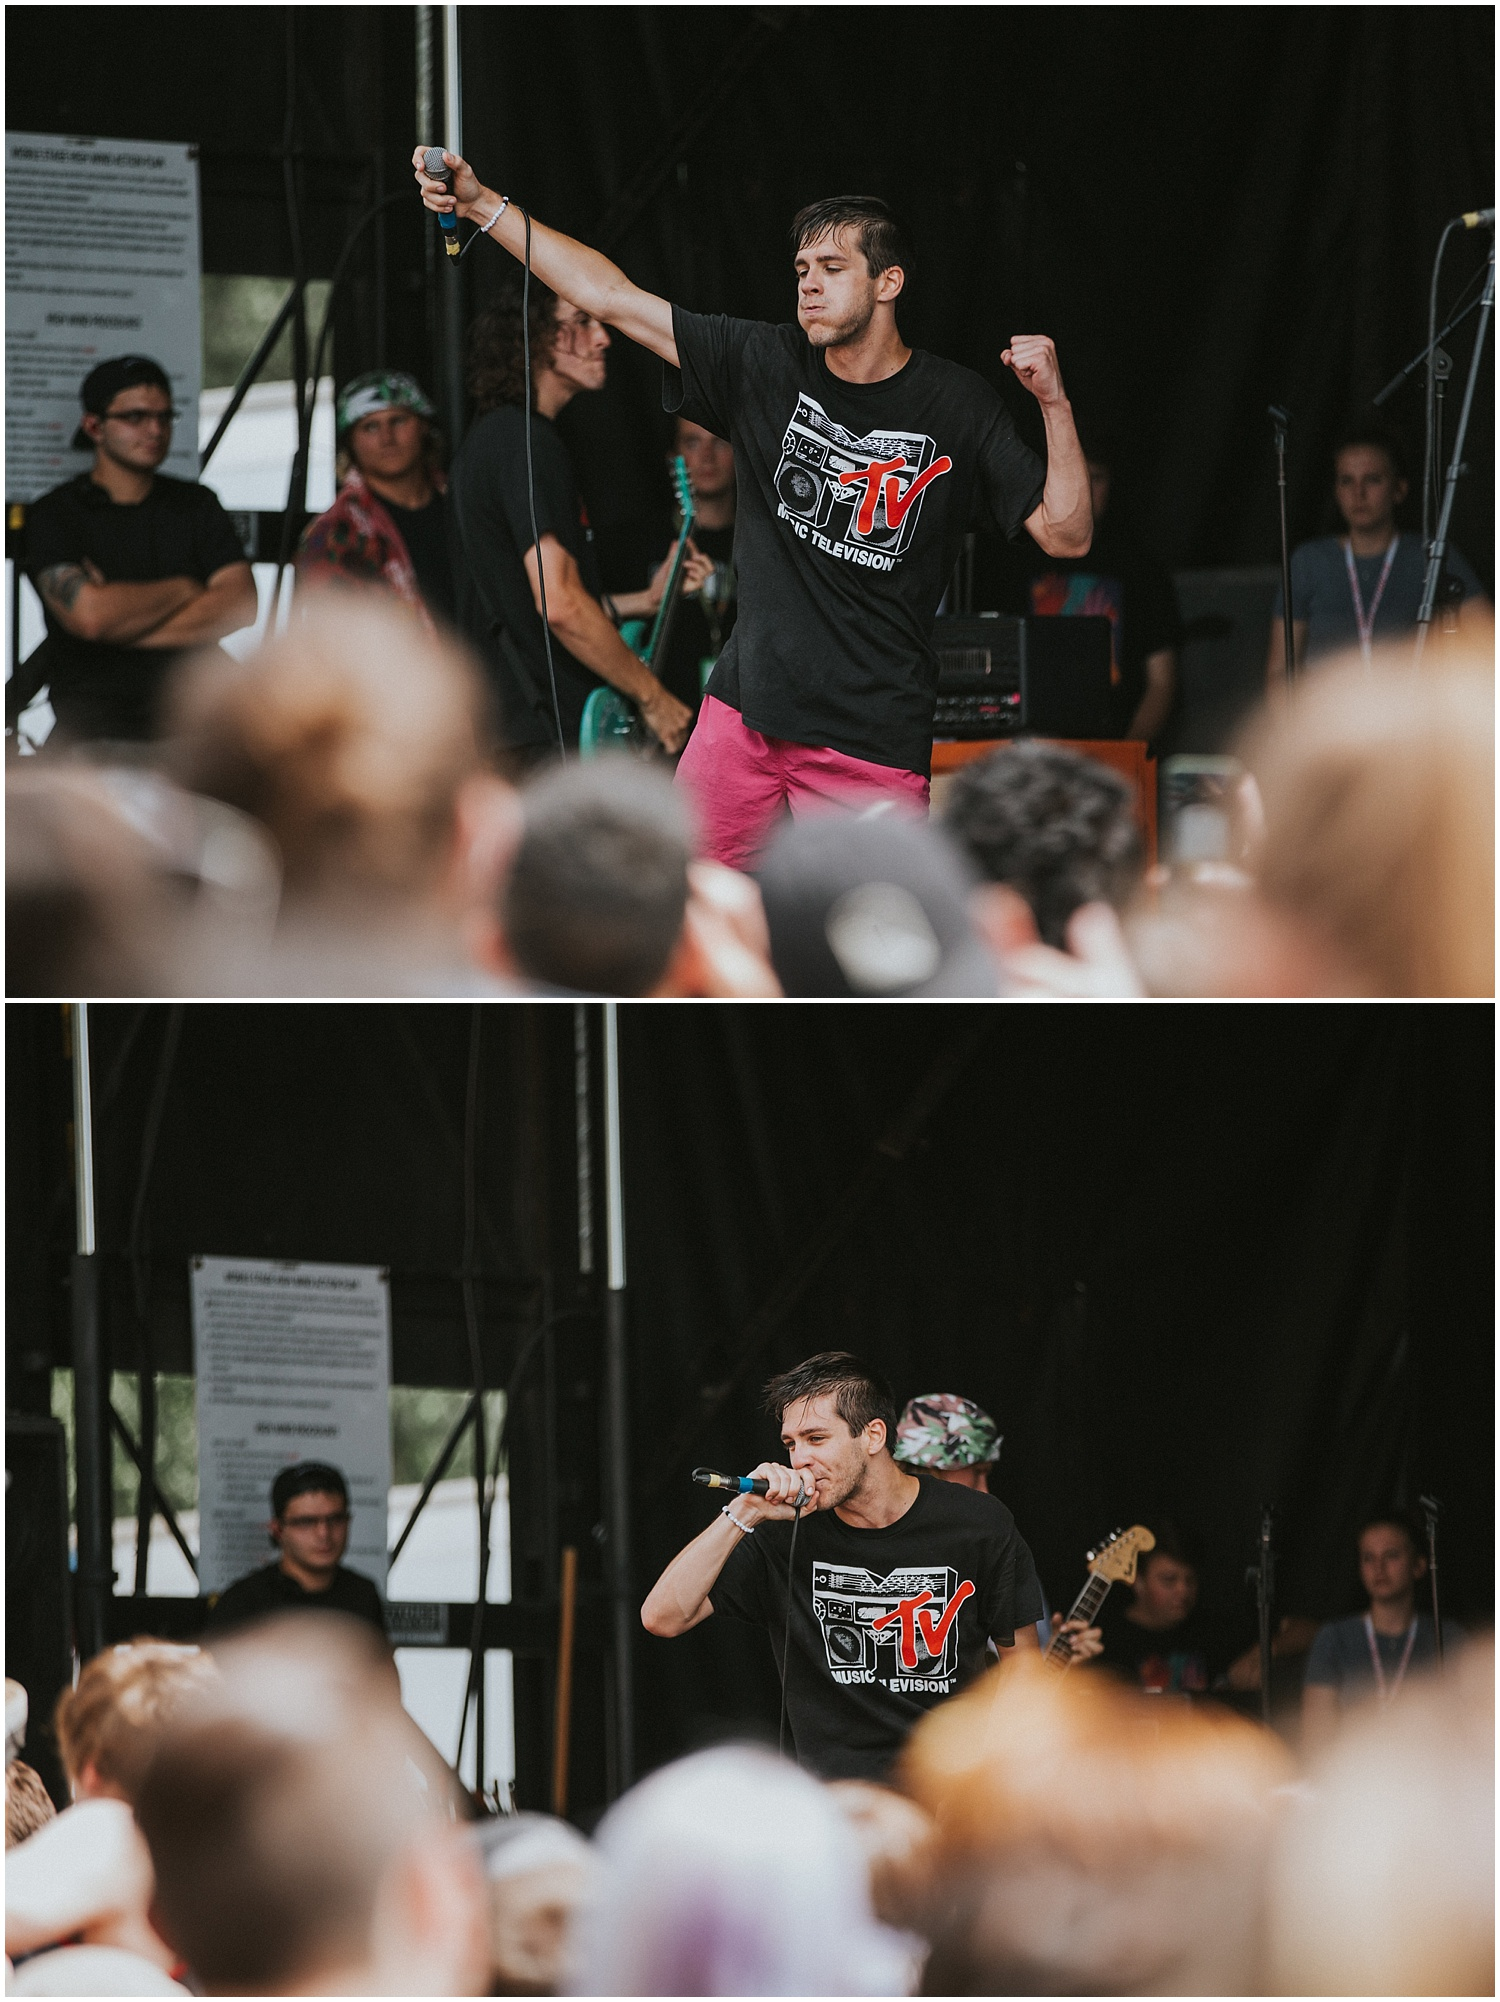 Knuckle Puck | Warped Tour, Scranton PA | July 11, 2016